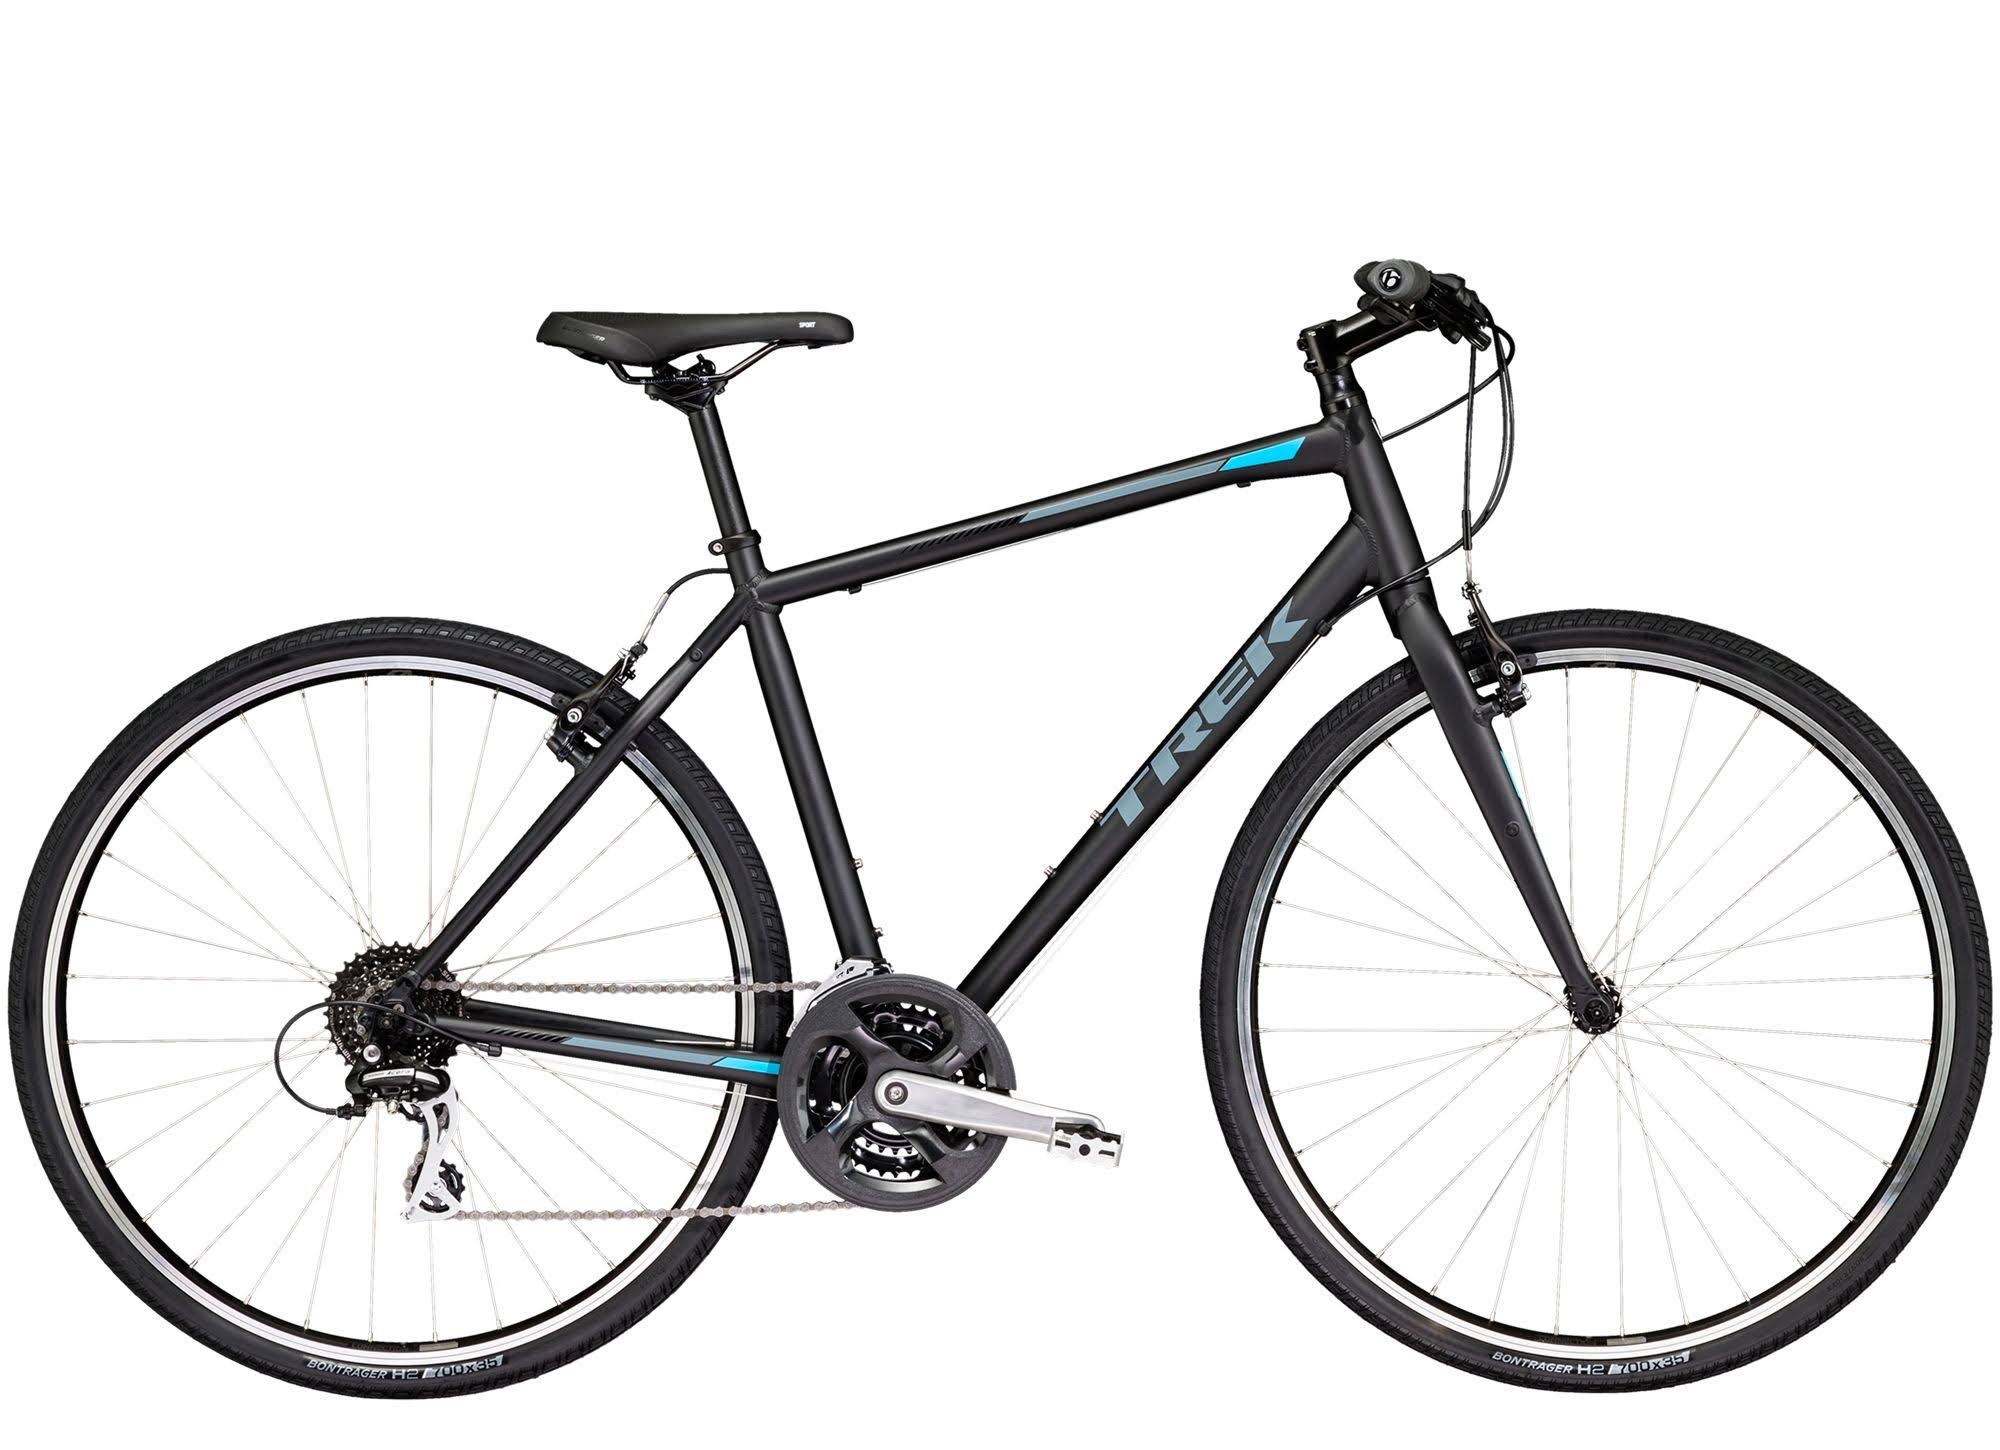 2019 Trek FX 2 Hybrid Bike in Black